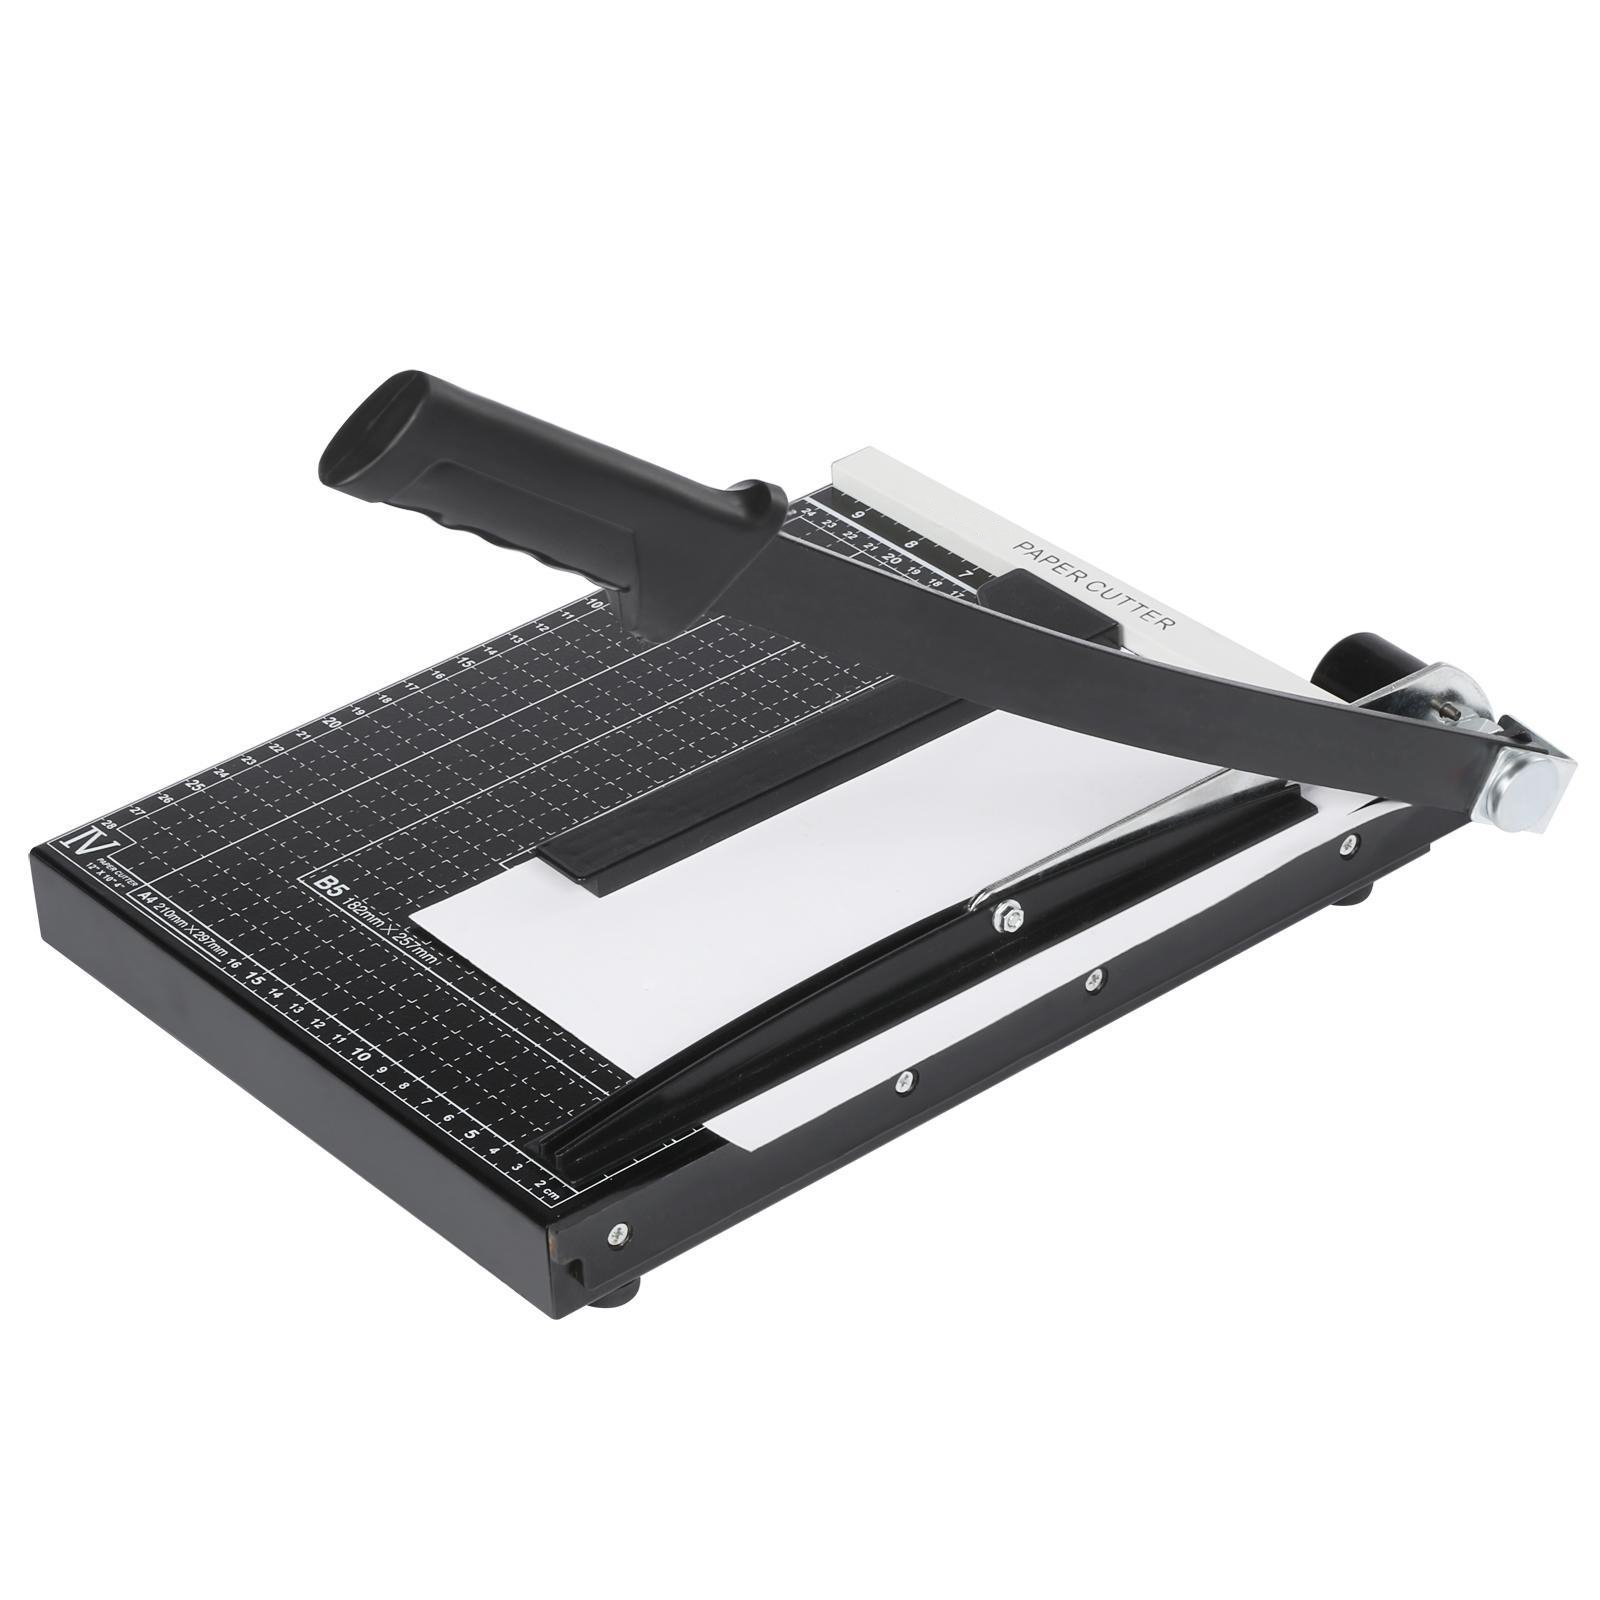 Meflying Large Paper Trimmer, 12 Inch Guillotine Paper Cutter Machine with Metal BaseBlade Gridded ,for Photo Card Cutter A3 A4 B4 Home Office (US STOCK) (Black)